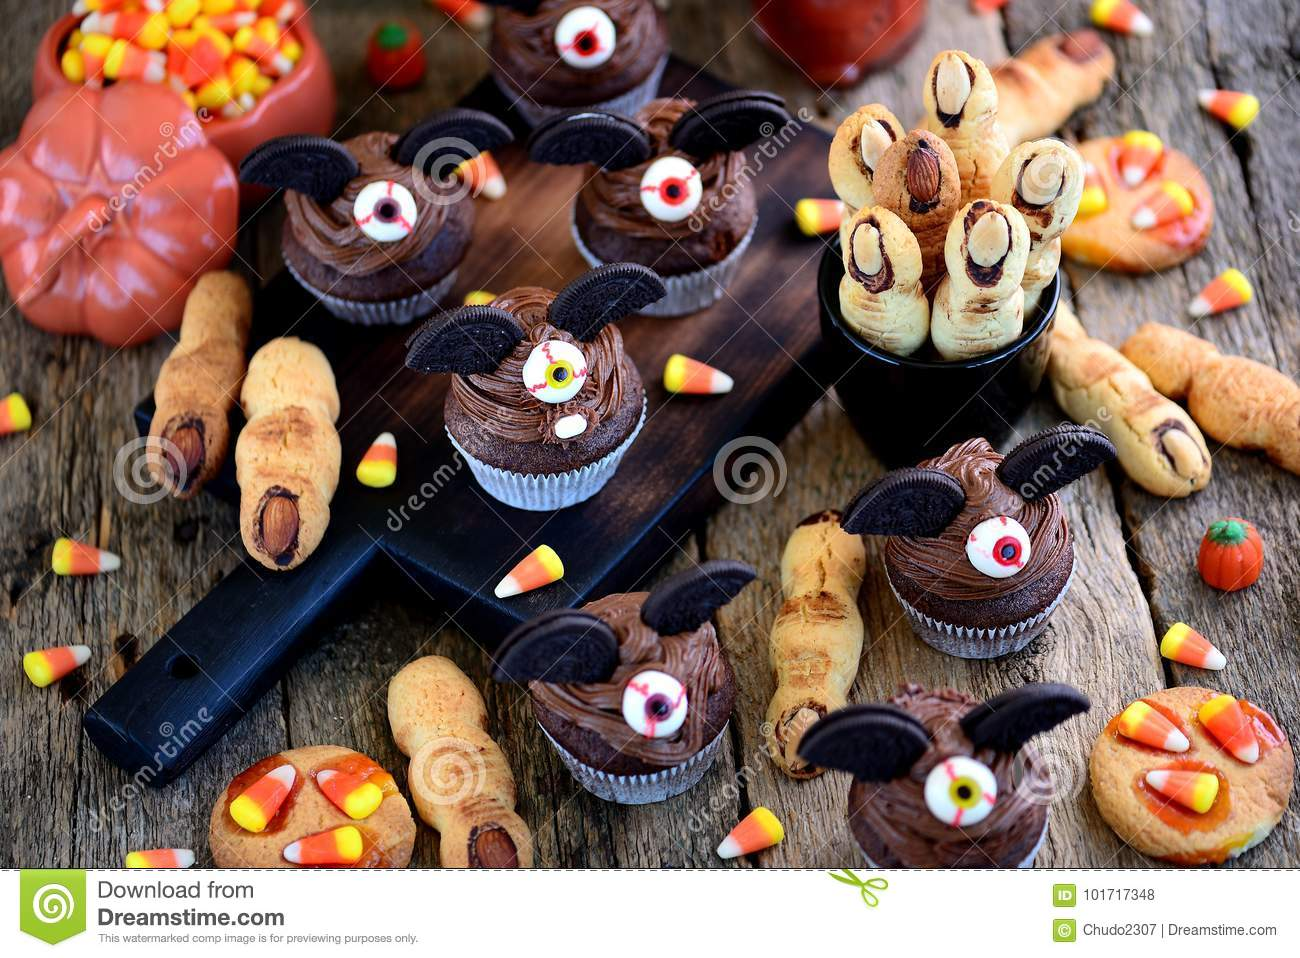 Chocolate cupcakes `bats` and shortbread cookies `witch`s fingers` - delicious bakery sweets for the celebration of Halloween.